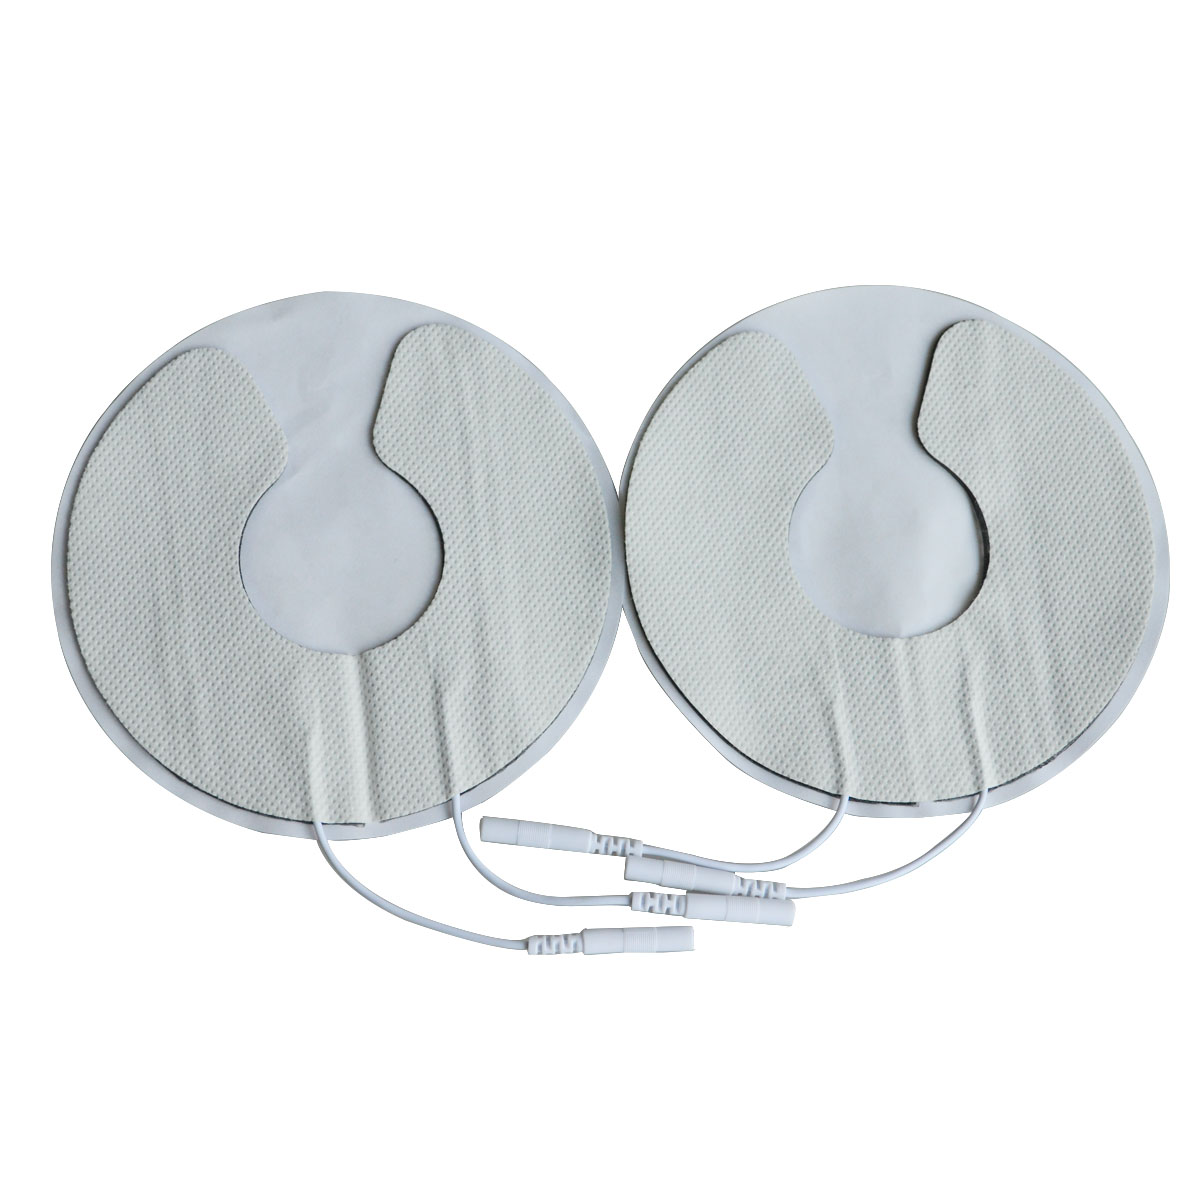 New 1Pair Breast Electrode Pads Chest Adhesive Patches Breast Physiotherapy Jack 2.0mm For Breast Massage